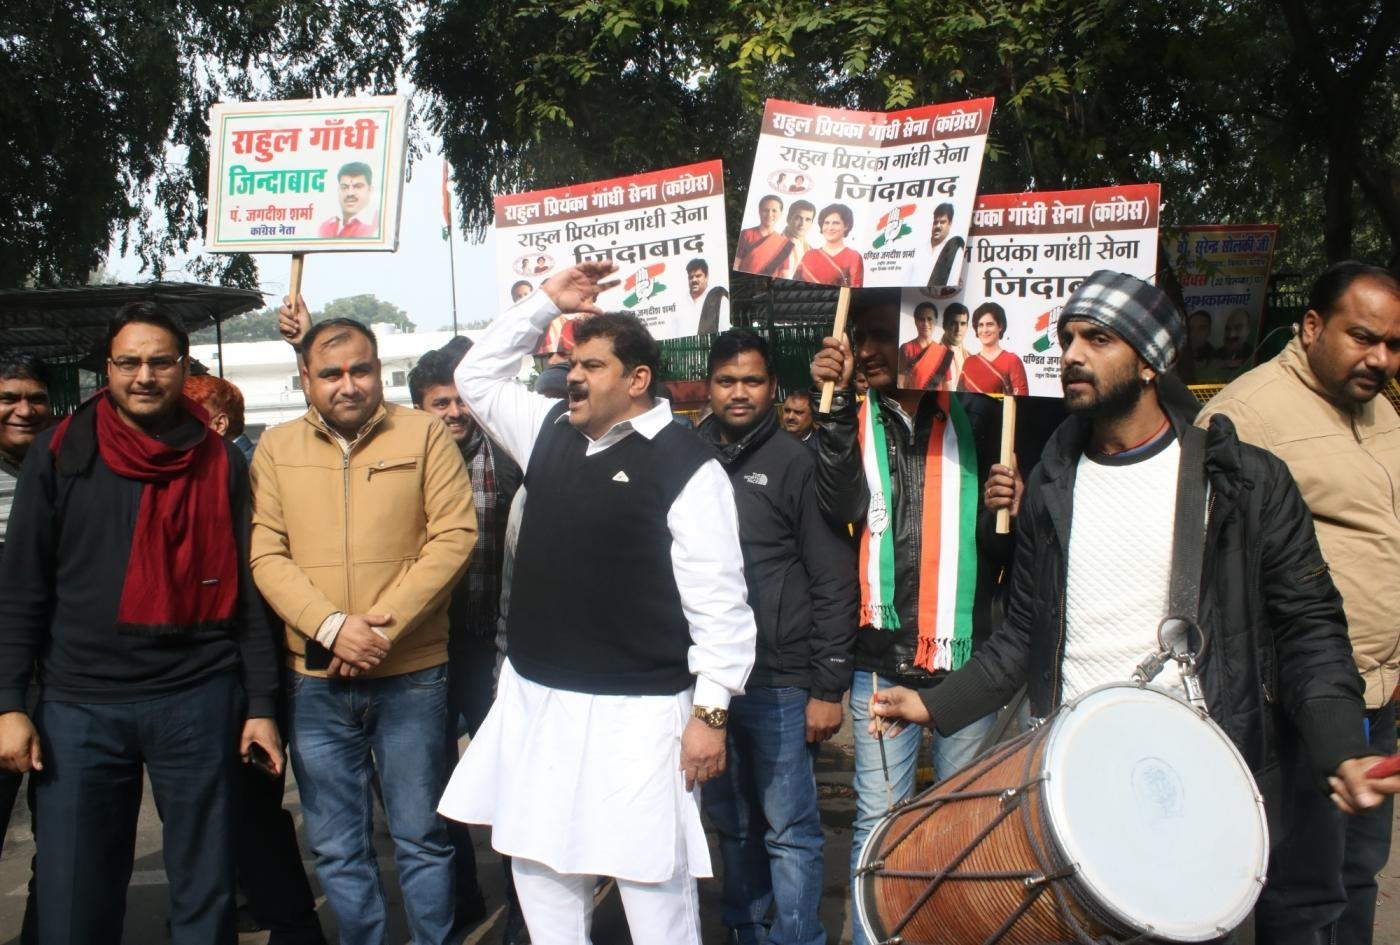 New Delhi: Congress workers celebrate the party's performance in Jharkhand Assembly elections as counting is underway, outside the party's headquarters in New Delhi on Dec 23, 2019. The grand alliance of the JMM-Cong-RJD has managed to take early lead over the BJP in Jharkhand Assembly elections as per the early trends and is likely to form the next government in the mineral rich state. (Photo: IANS) by .